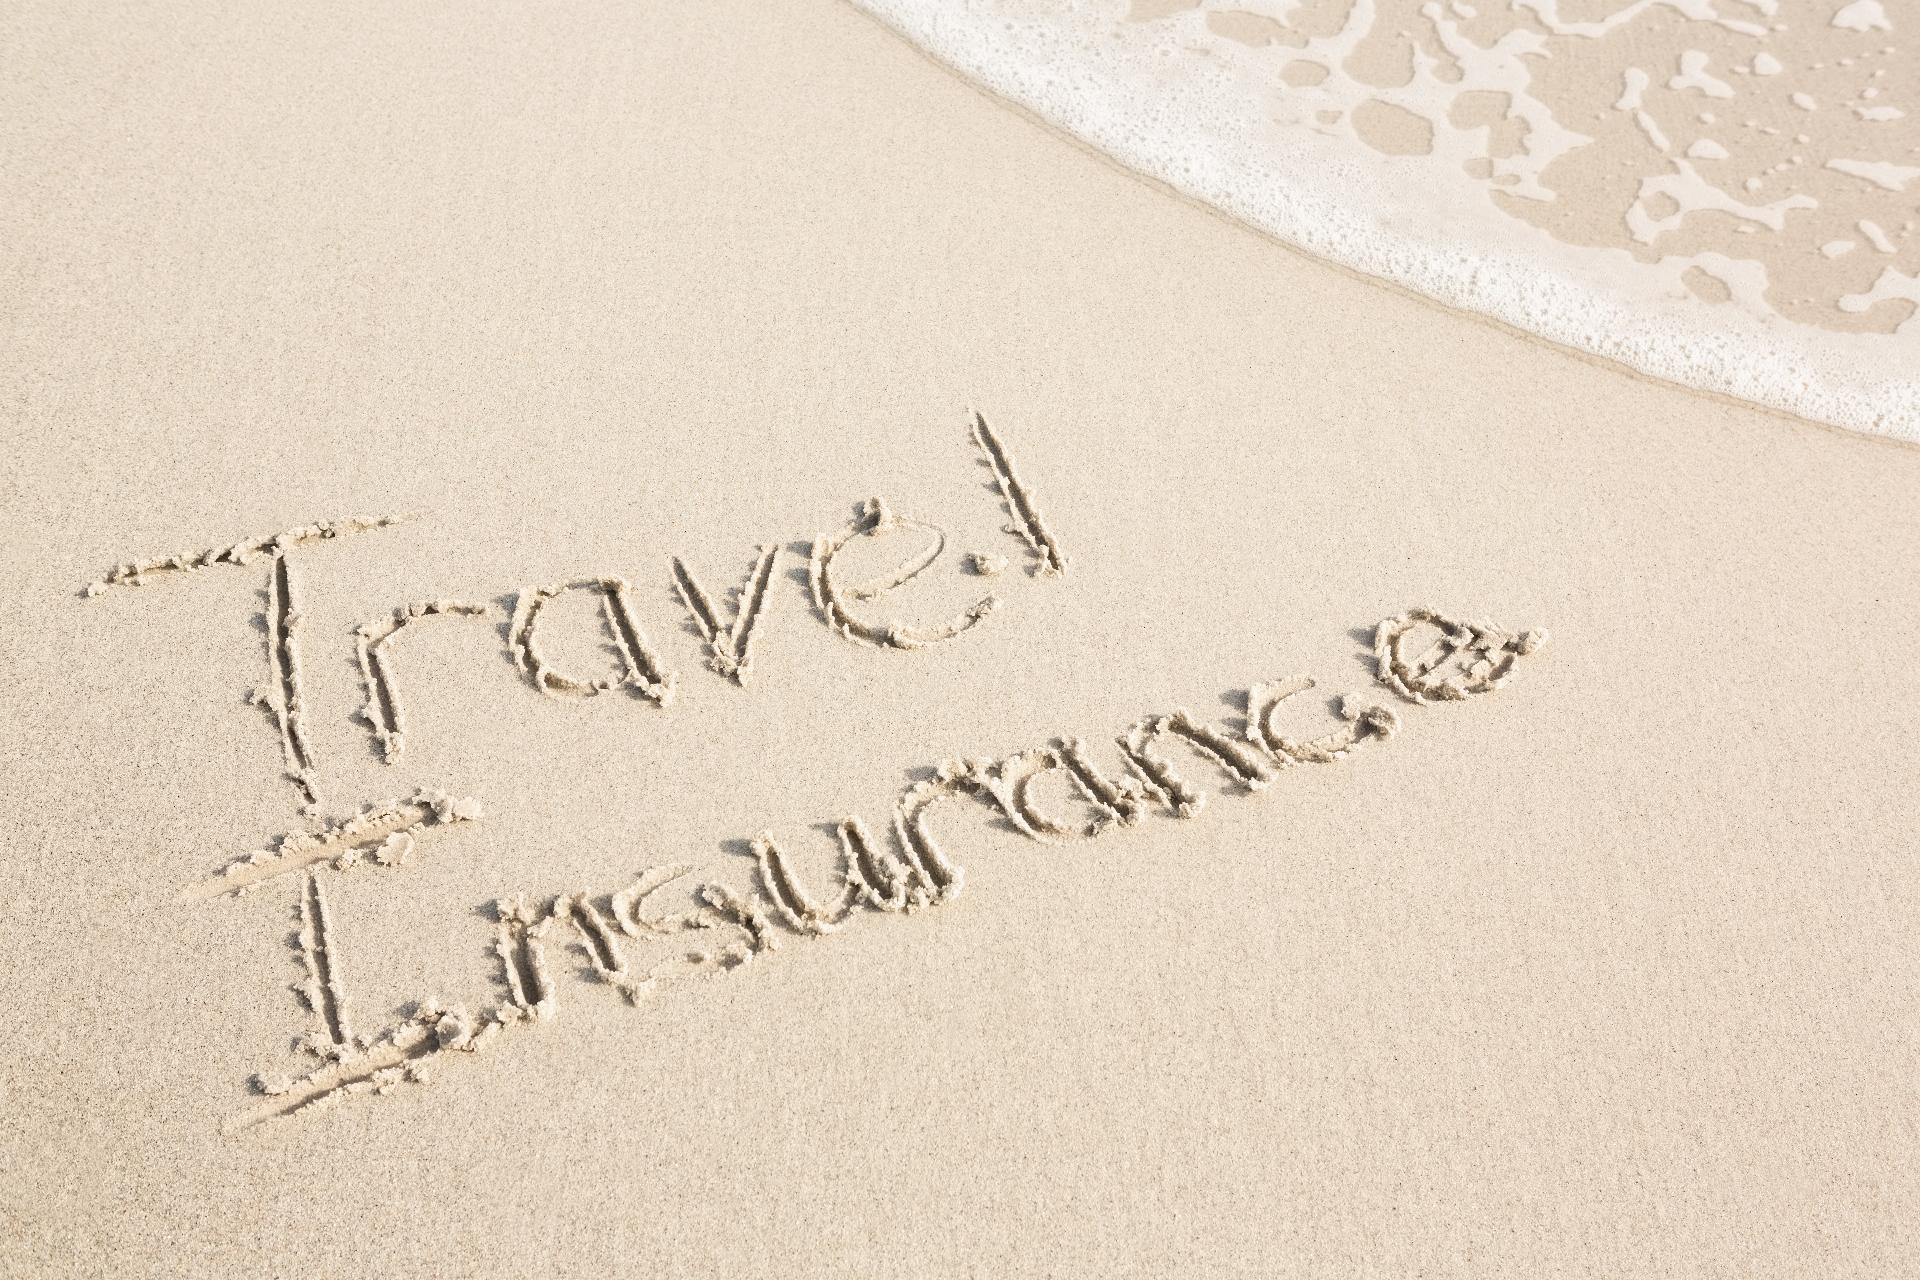 Tips on how to find and buy the best travel insurance